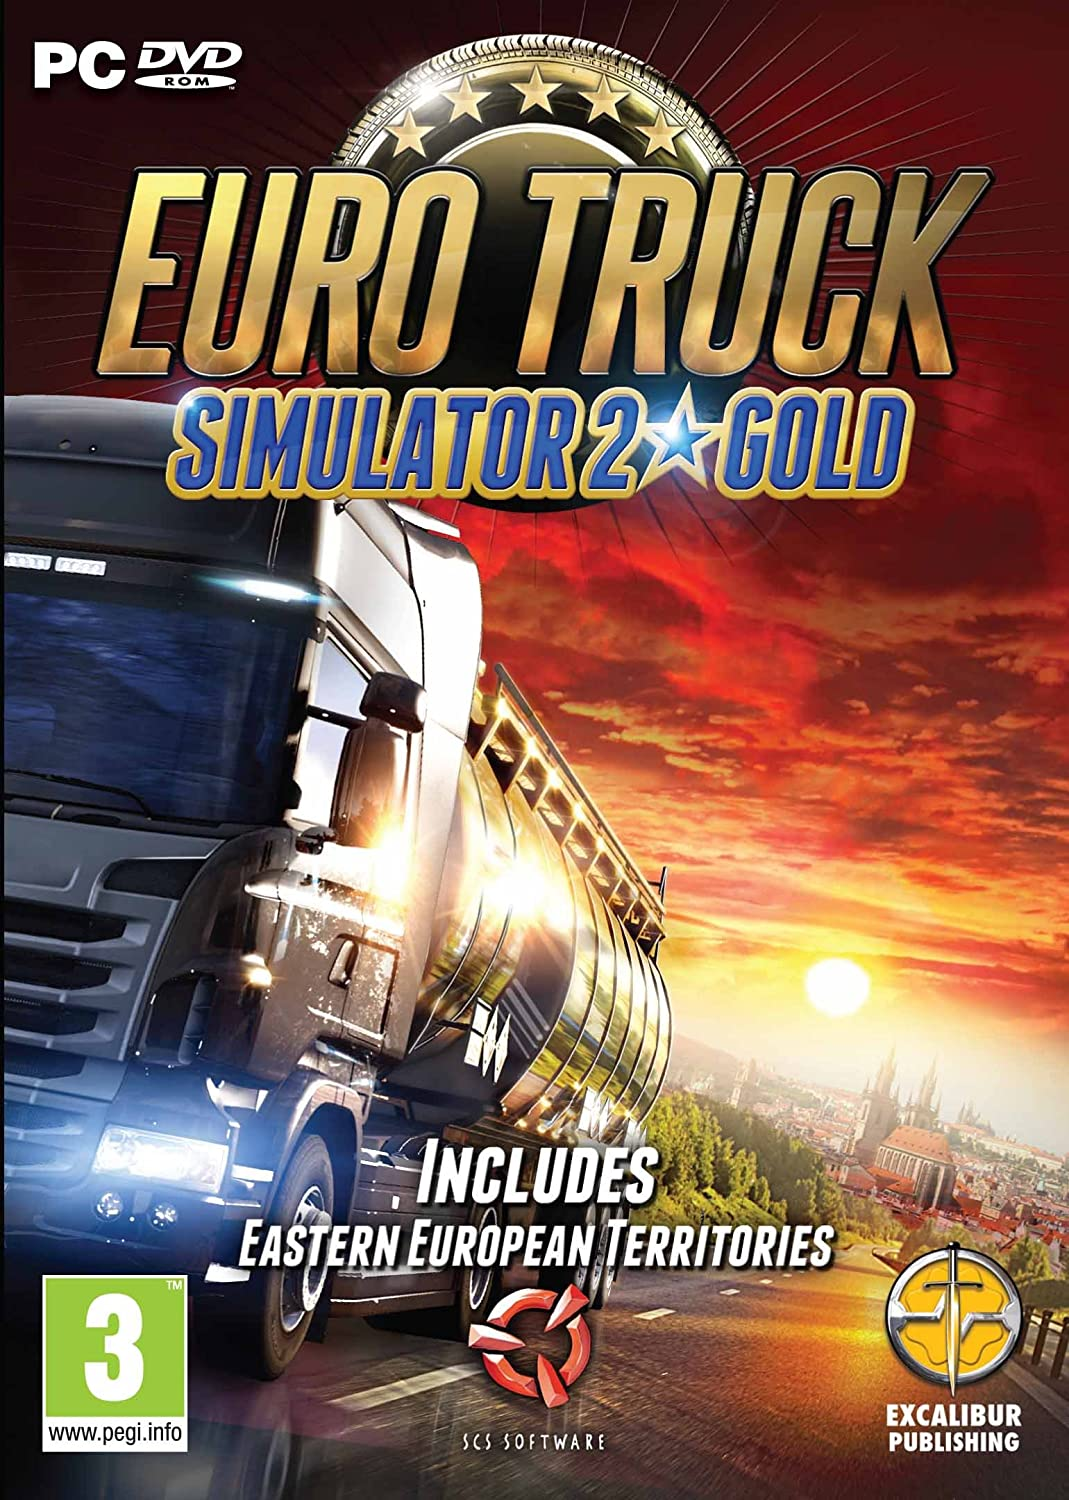 Euro Truck Simulator 2 Gold Pc Cd Uk Video Games